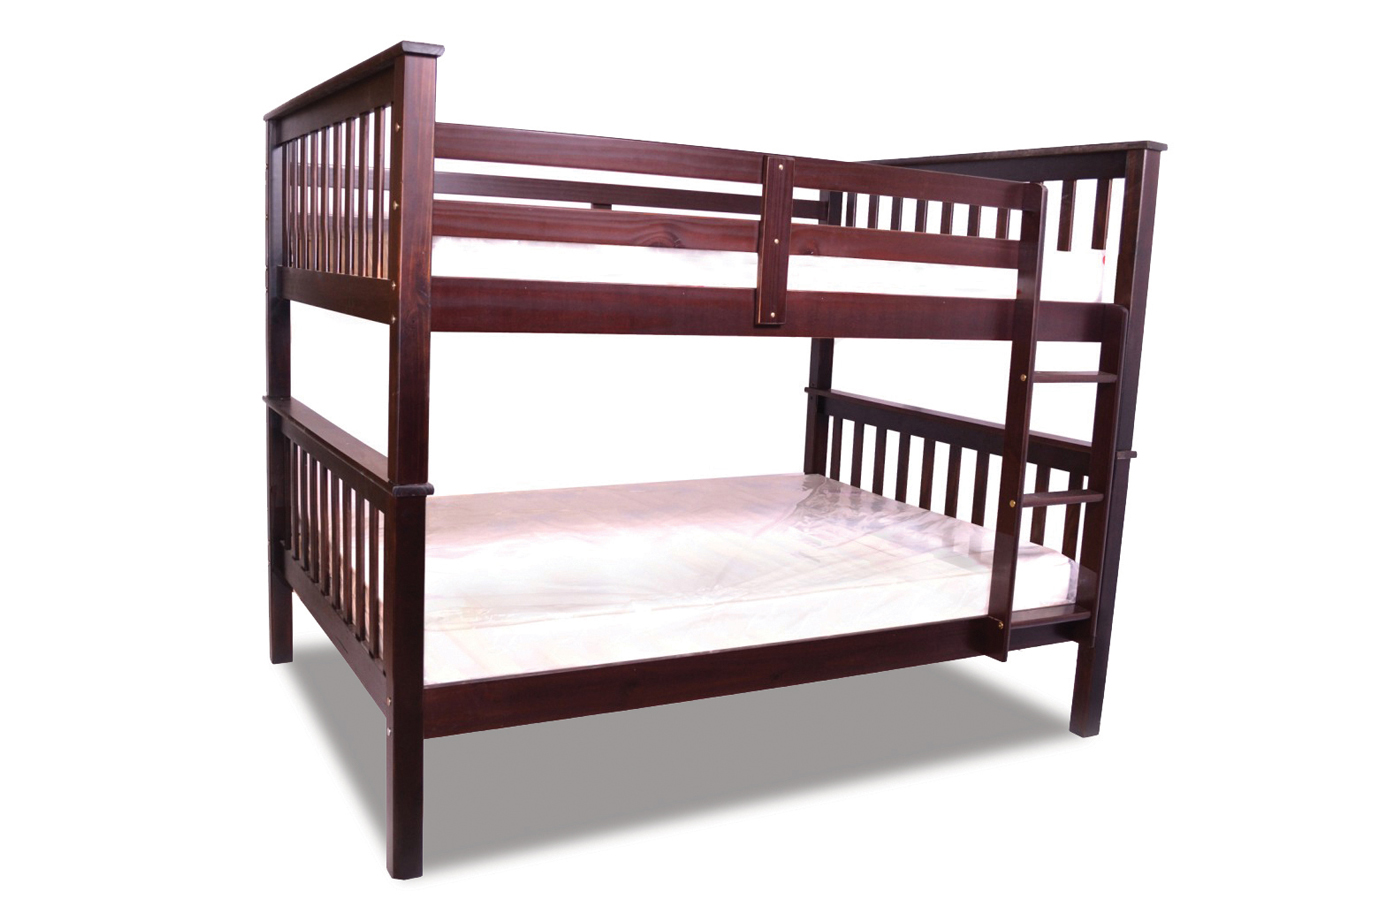 T-2502 Full over Full Bunk Bed